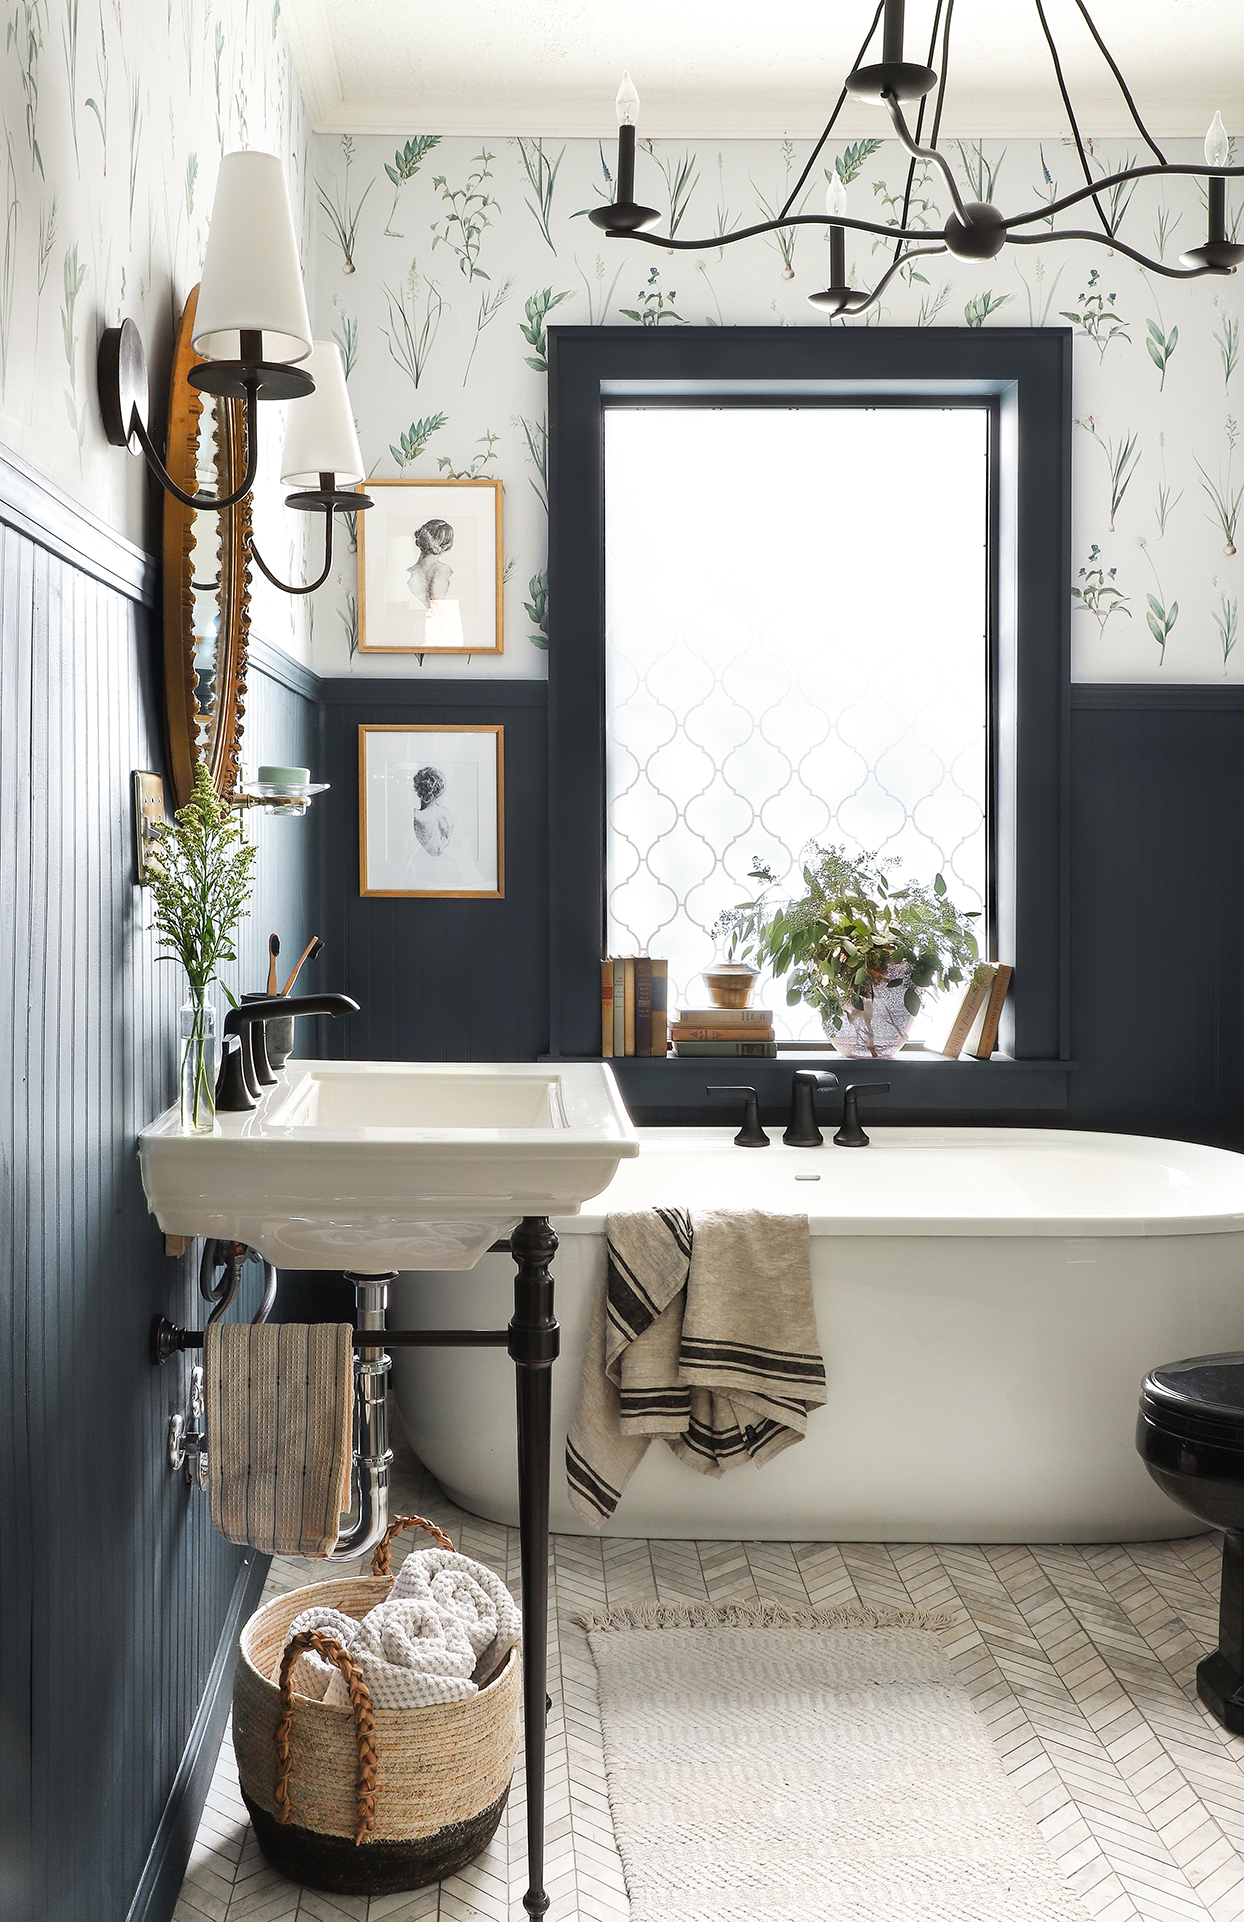 bathroom with pedestal sink bathtub and black wainscoting with botanical-patterned wallpaper above